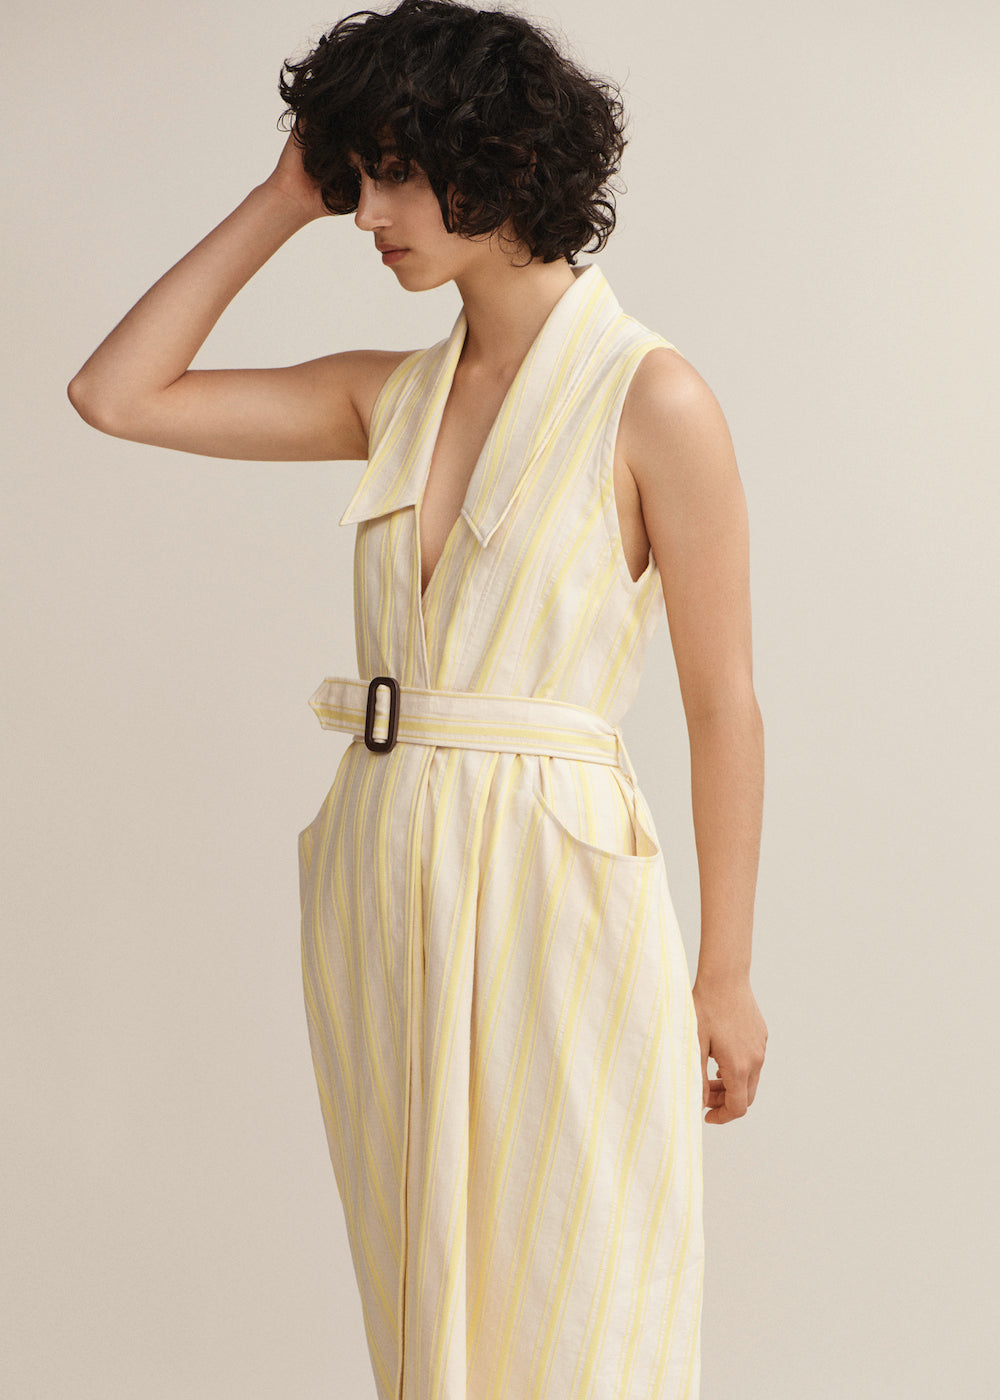 Yellow Stripe Halter Wrap Dress - King & Tuckfield